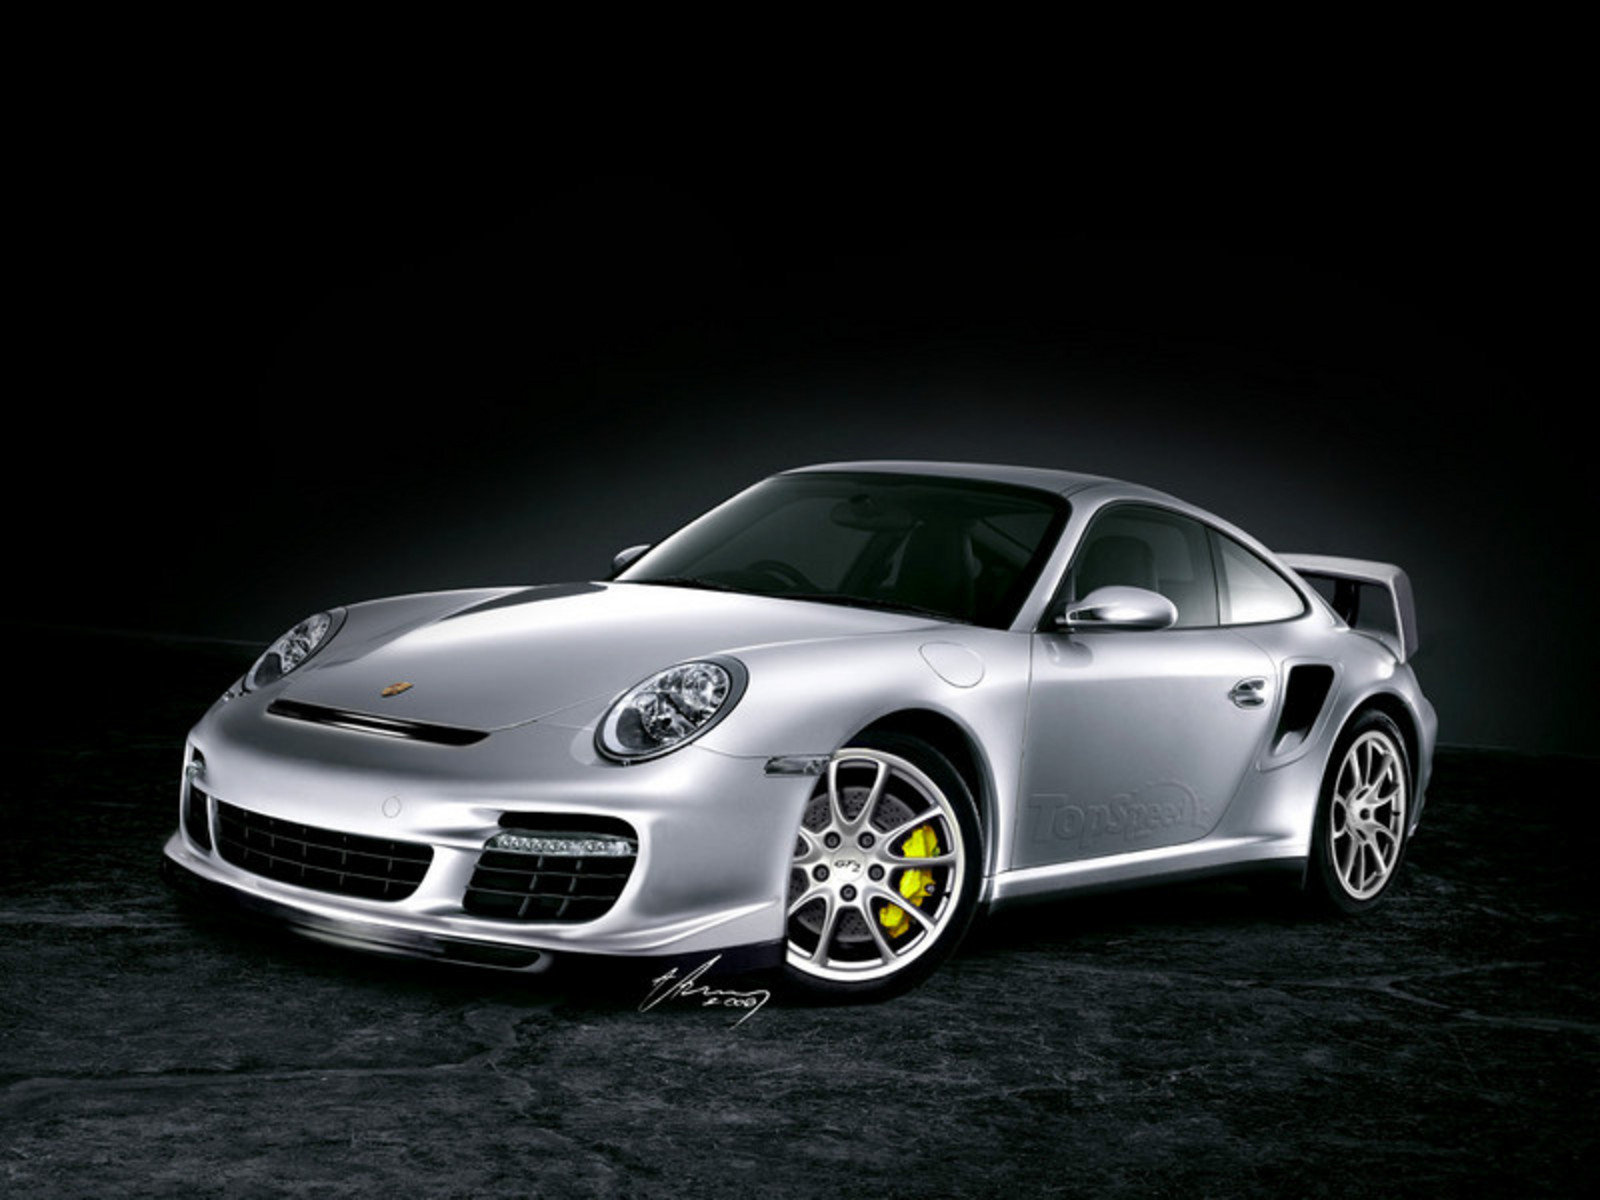 2007 porsche 911 gt2 preview review top speed. Black Bedroom Furniture Sets. Home Design Ideas